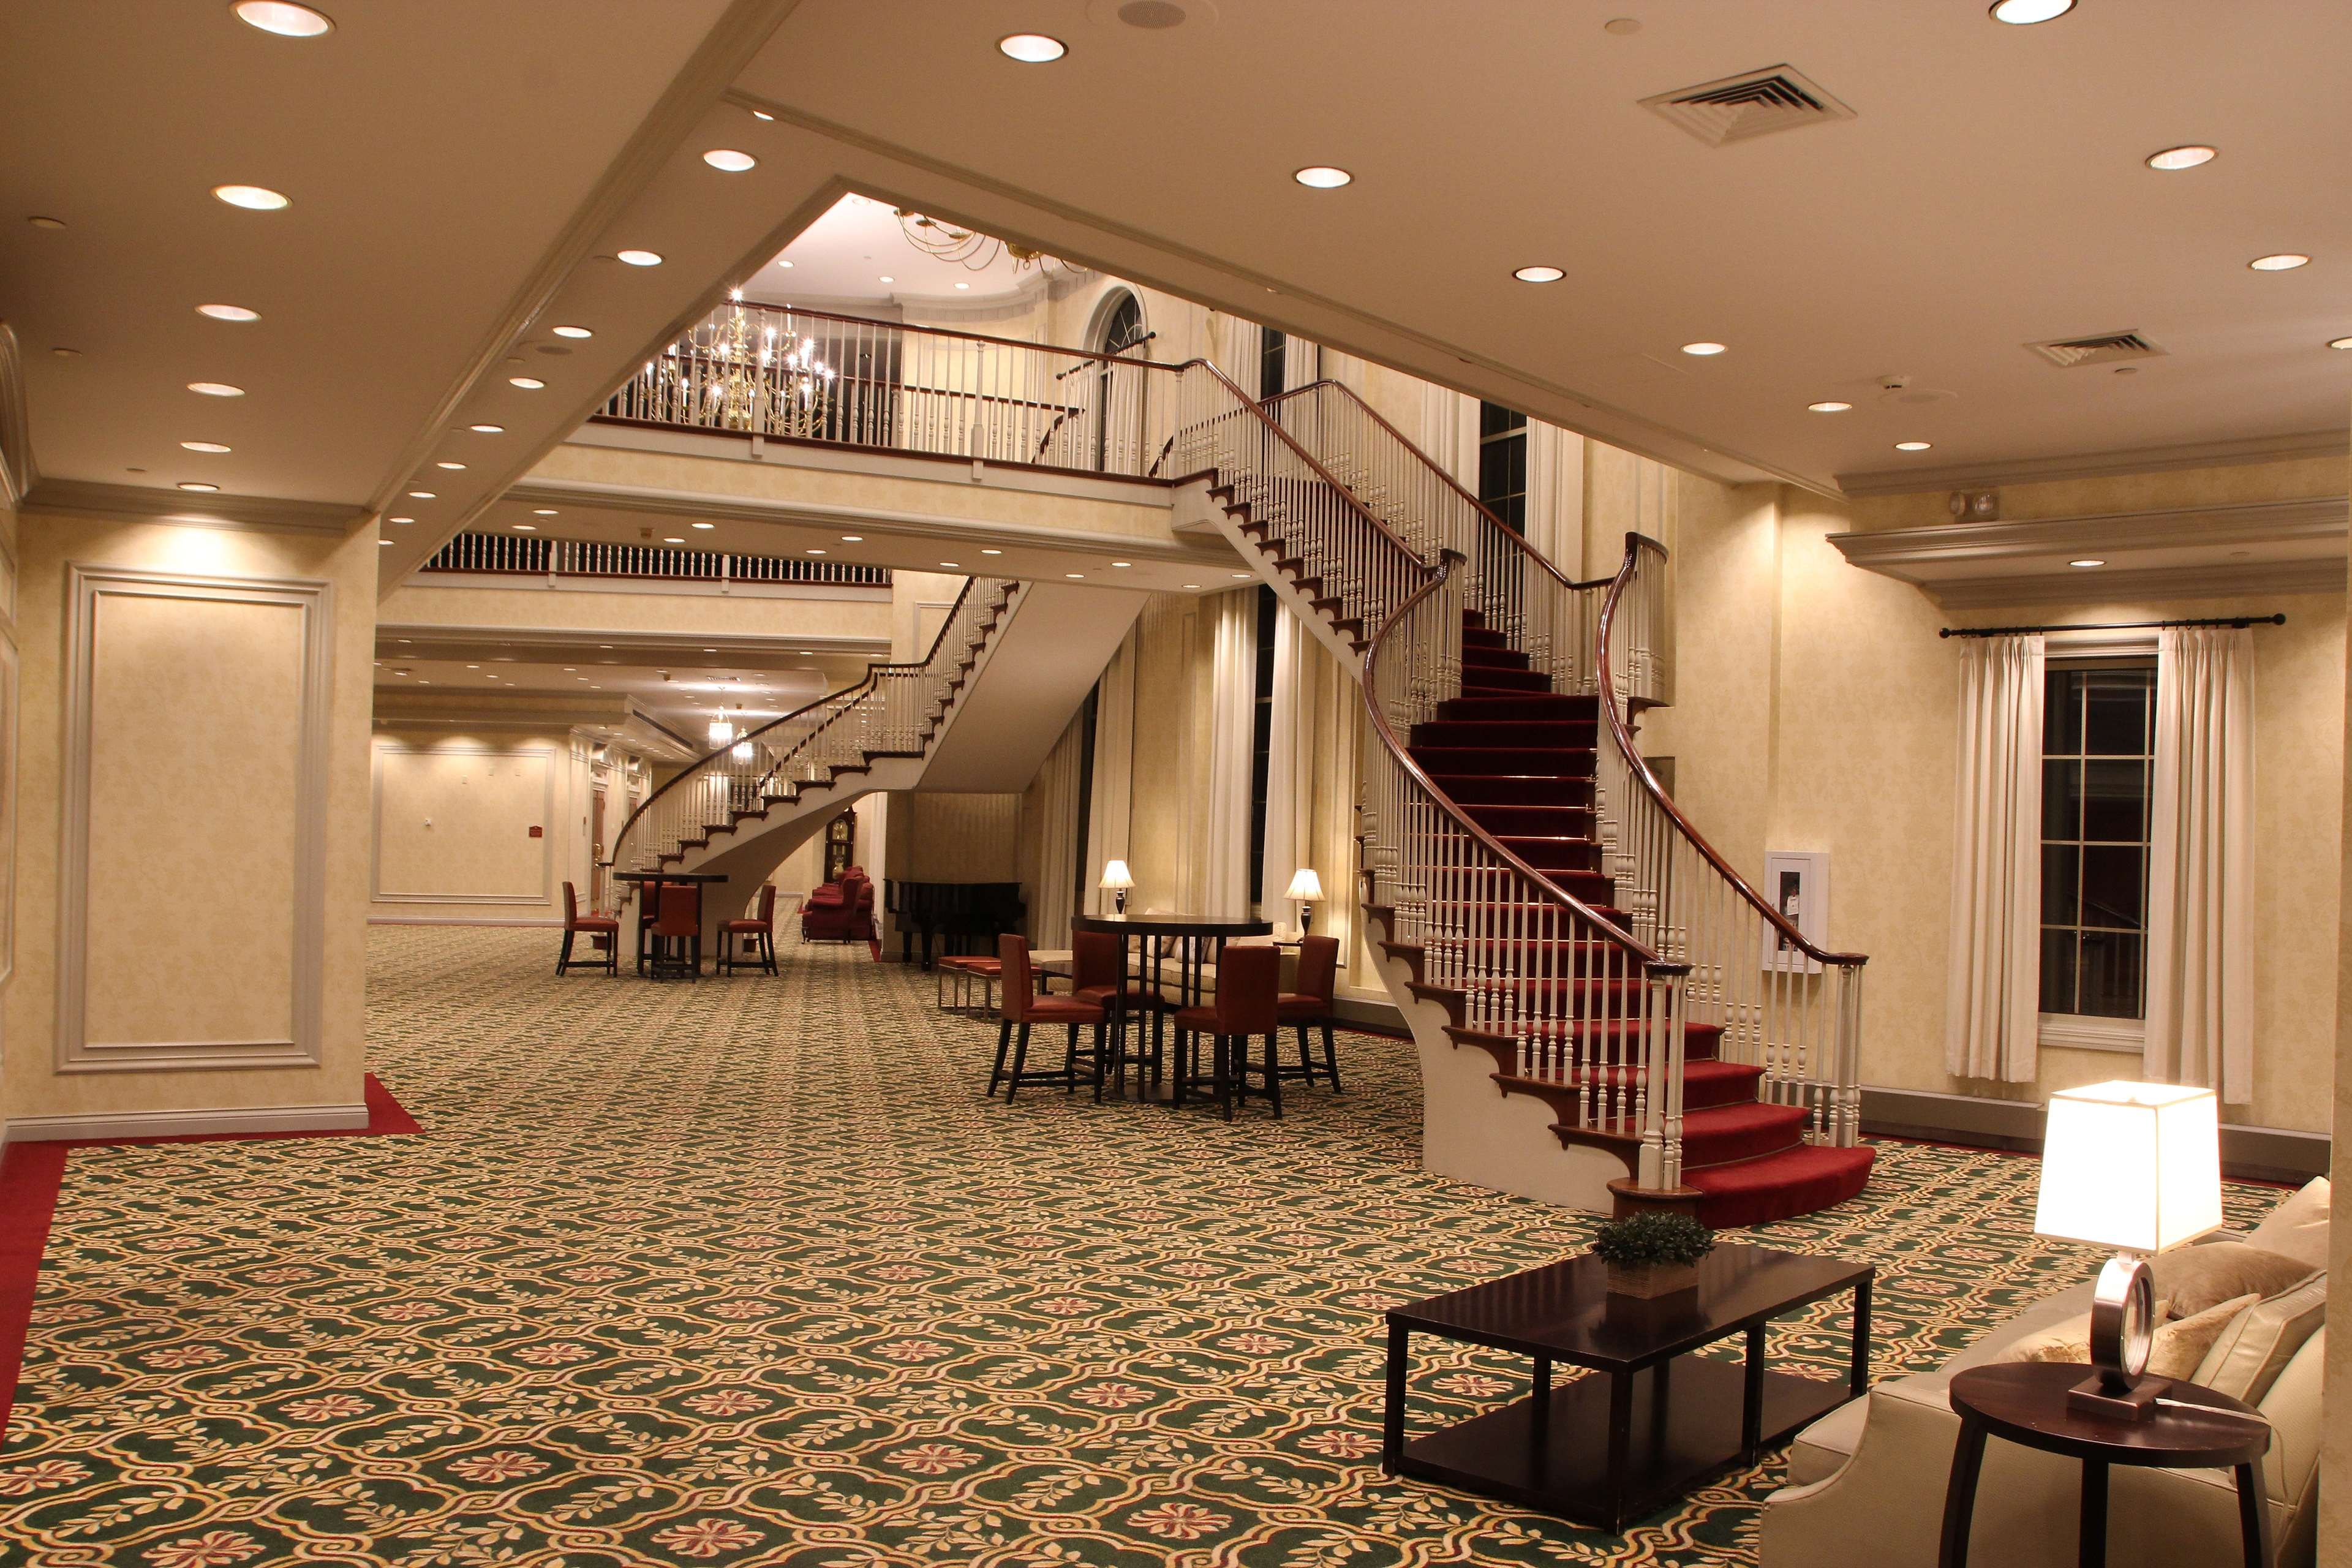 Radisson Hotel & Suites Chelmsford-Lowell - Closed in Chelmsford, MA, photo #18